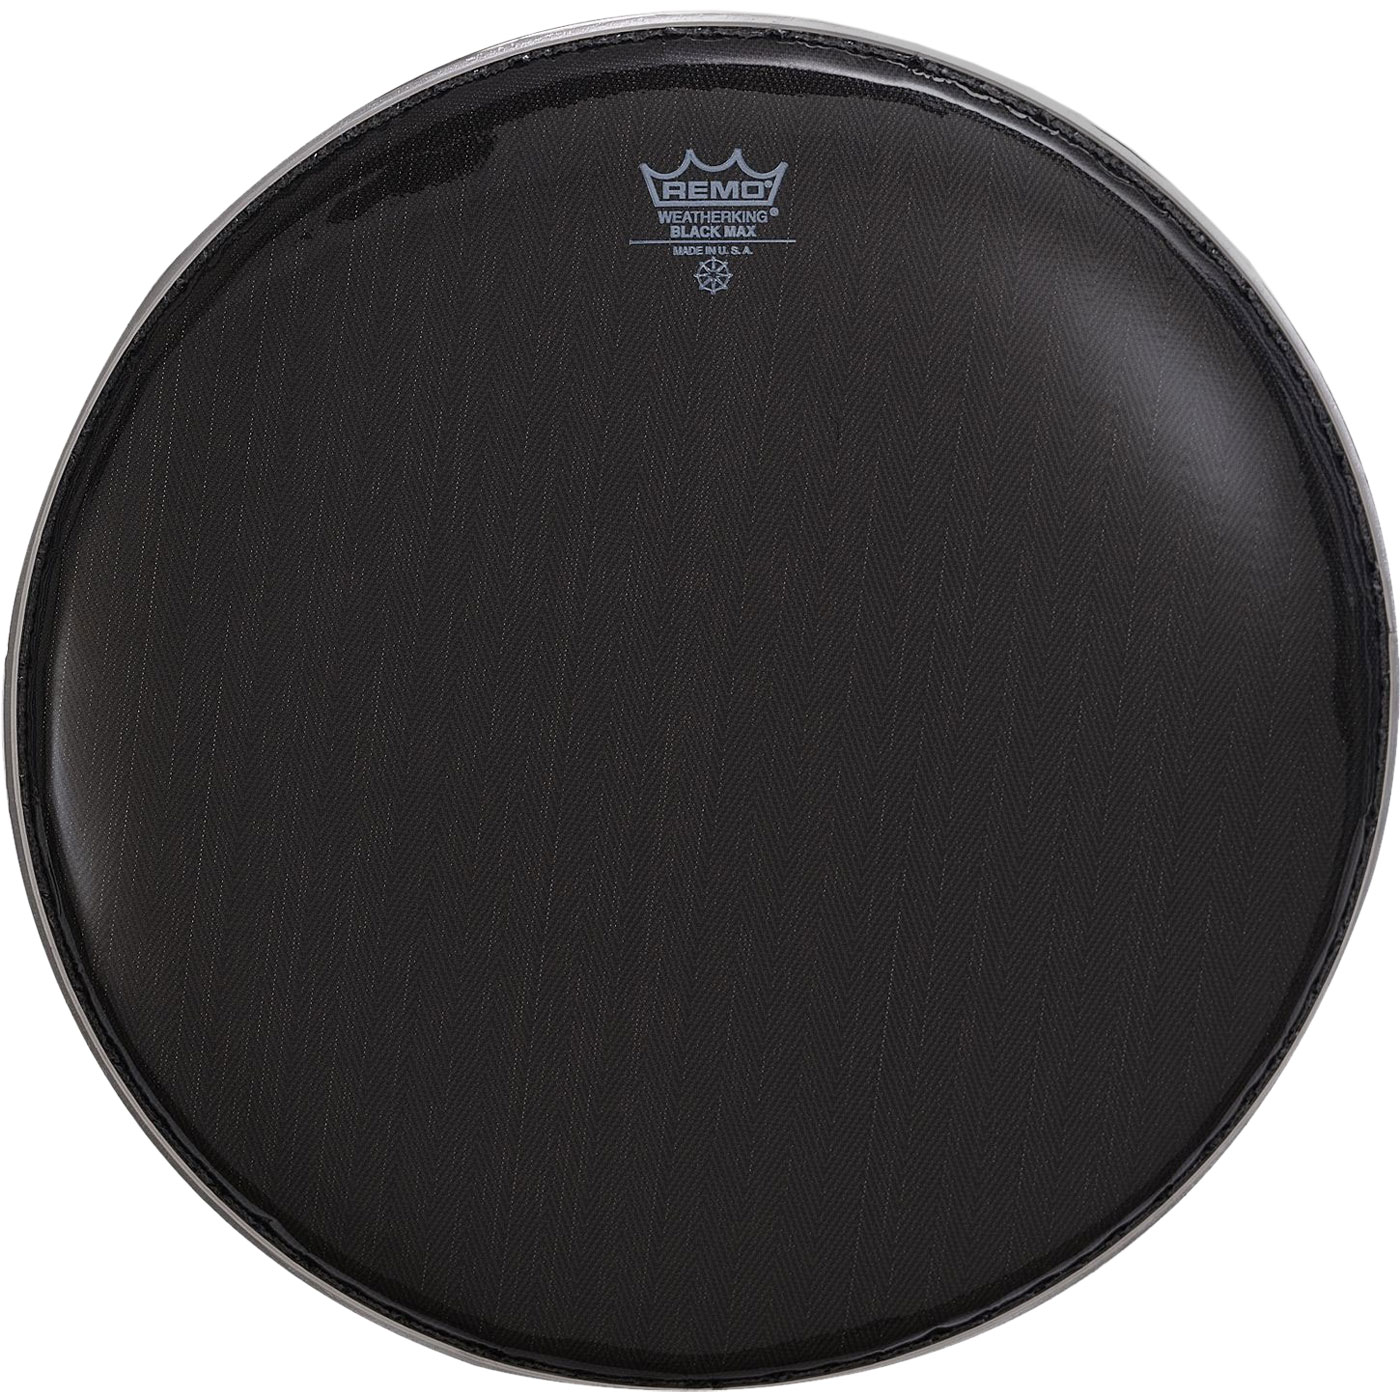 "Remo 14"" Black Max Marching Snare Drum Top (Batter) Head"